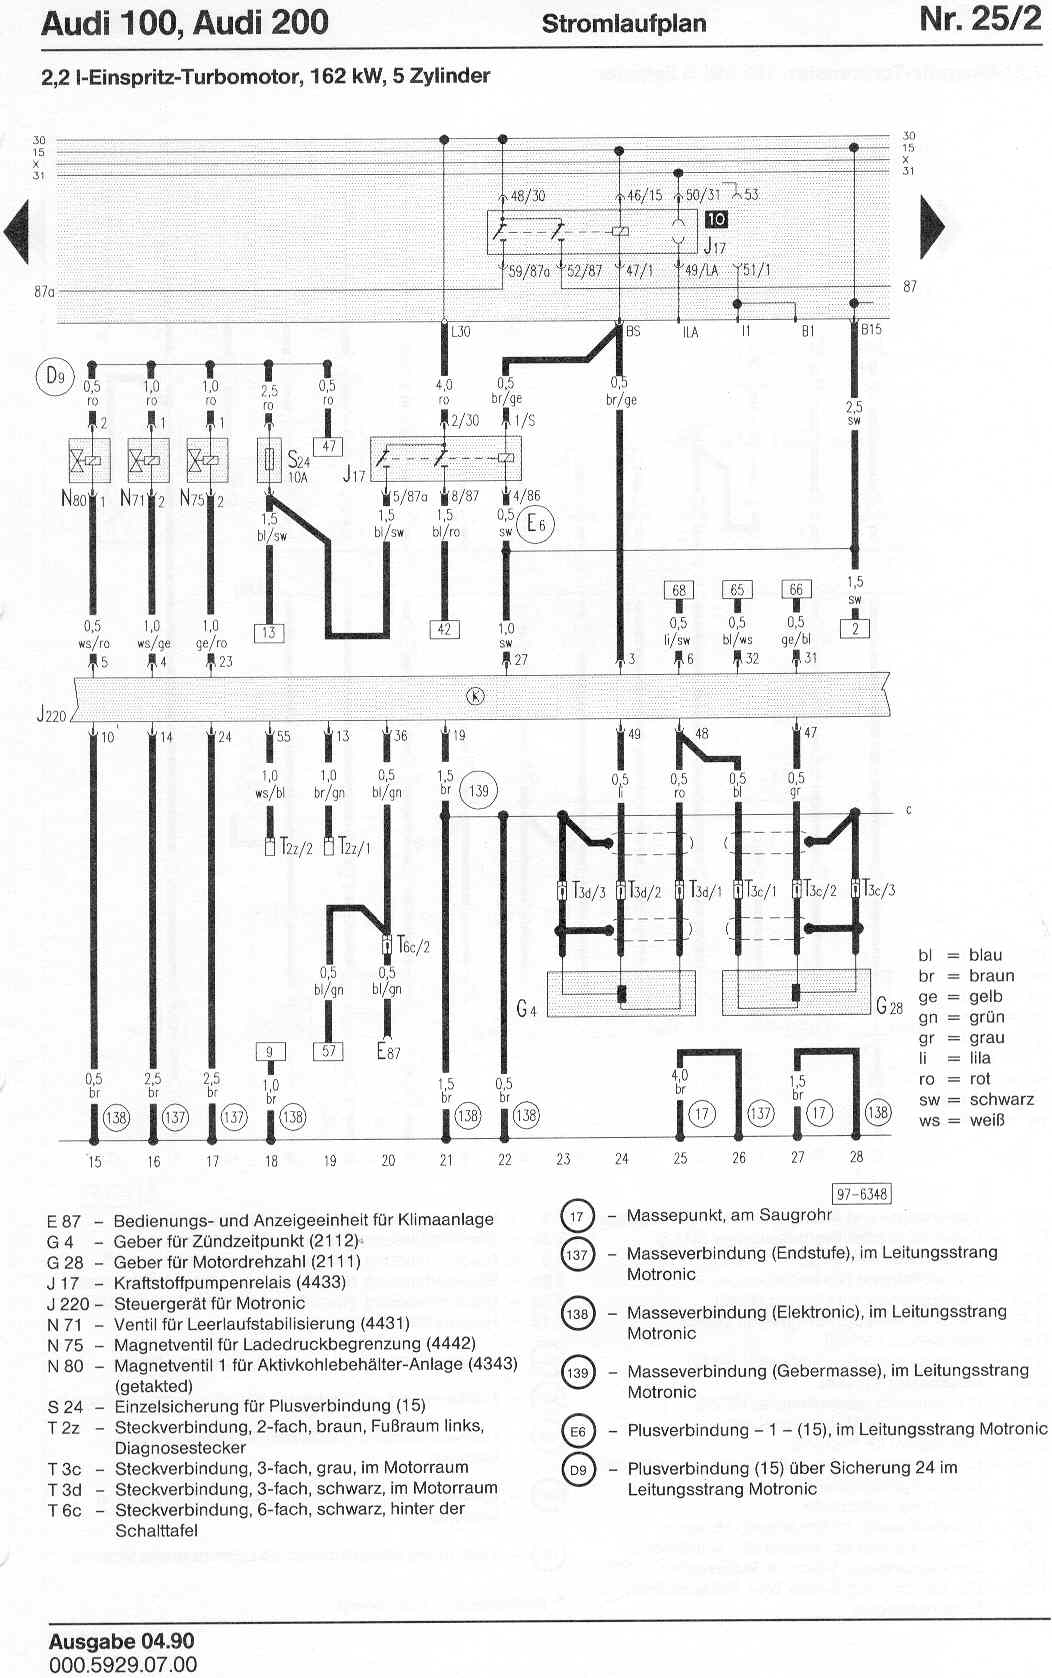 Audi 100/200 Factory Wiring Diagrams